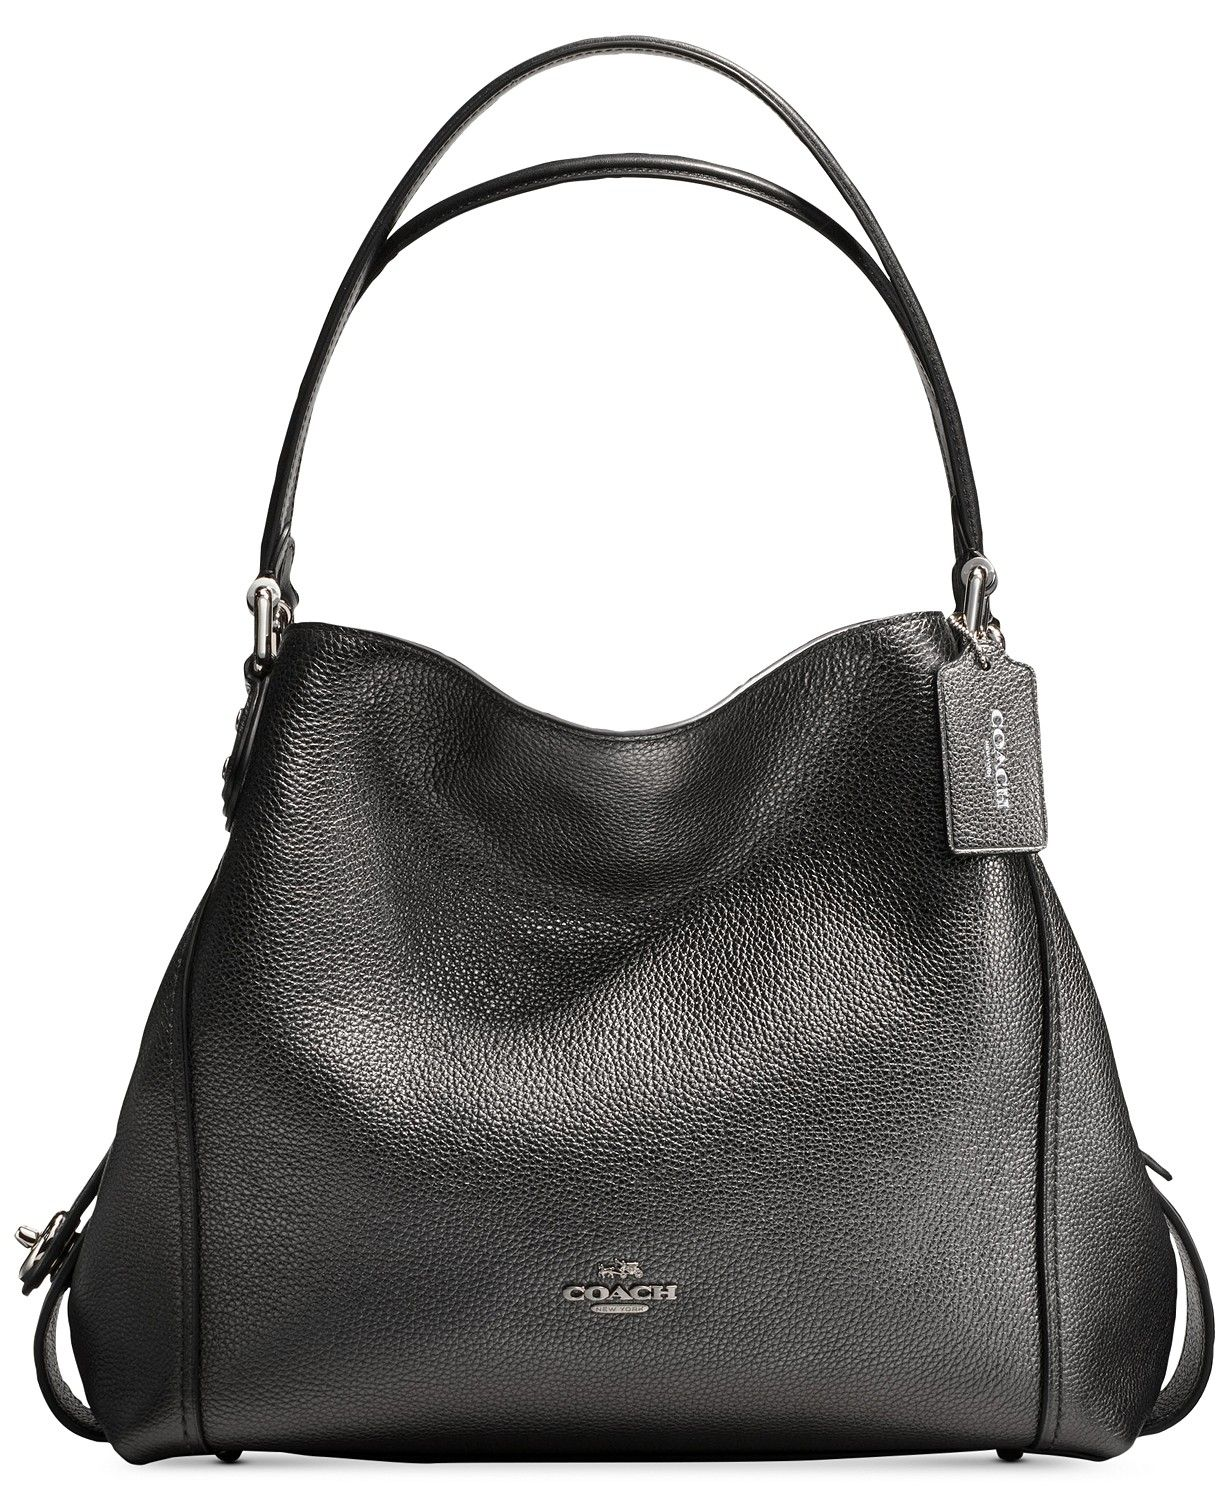 df9ba0bcb COACH's Edie shoulder bag expertly balances fashion and function with a  unique multi-compartment design in luxe metallic leather.